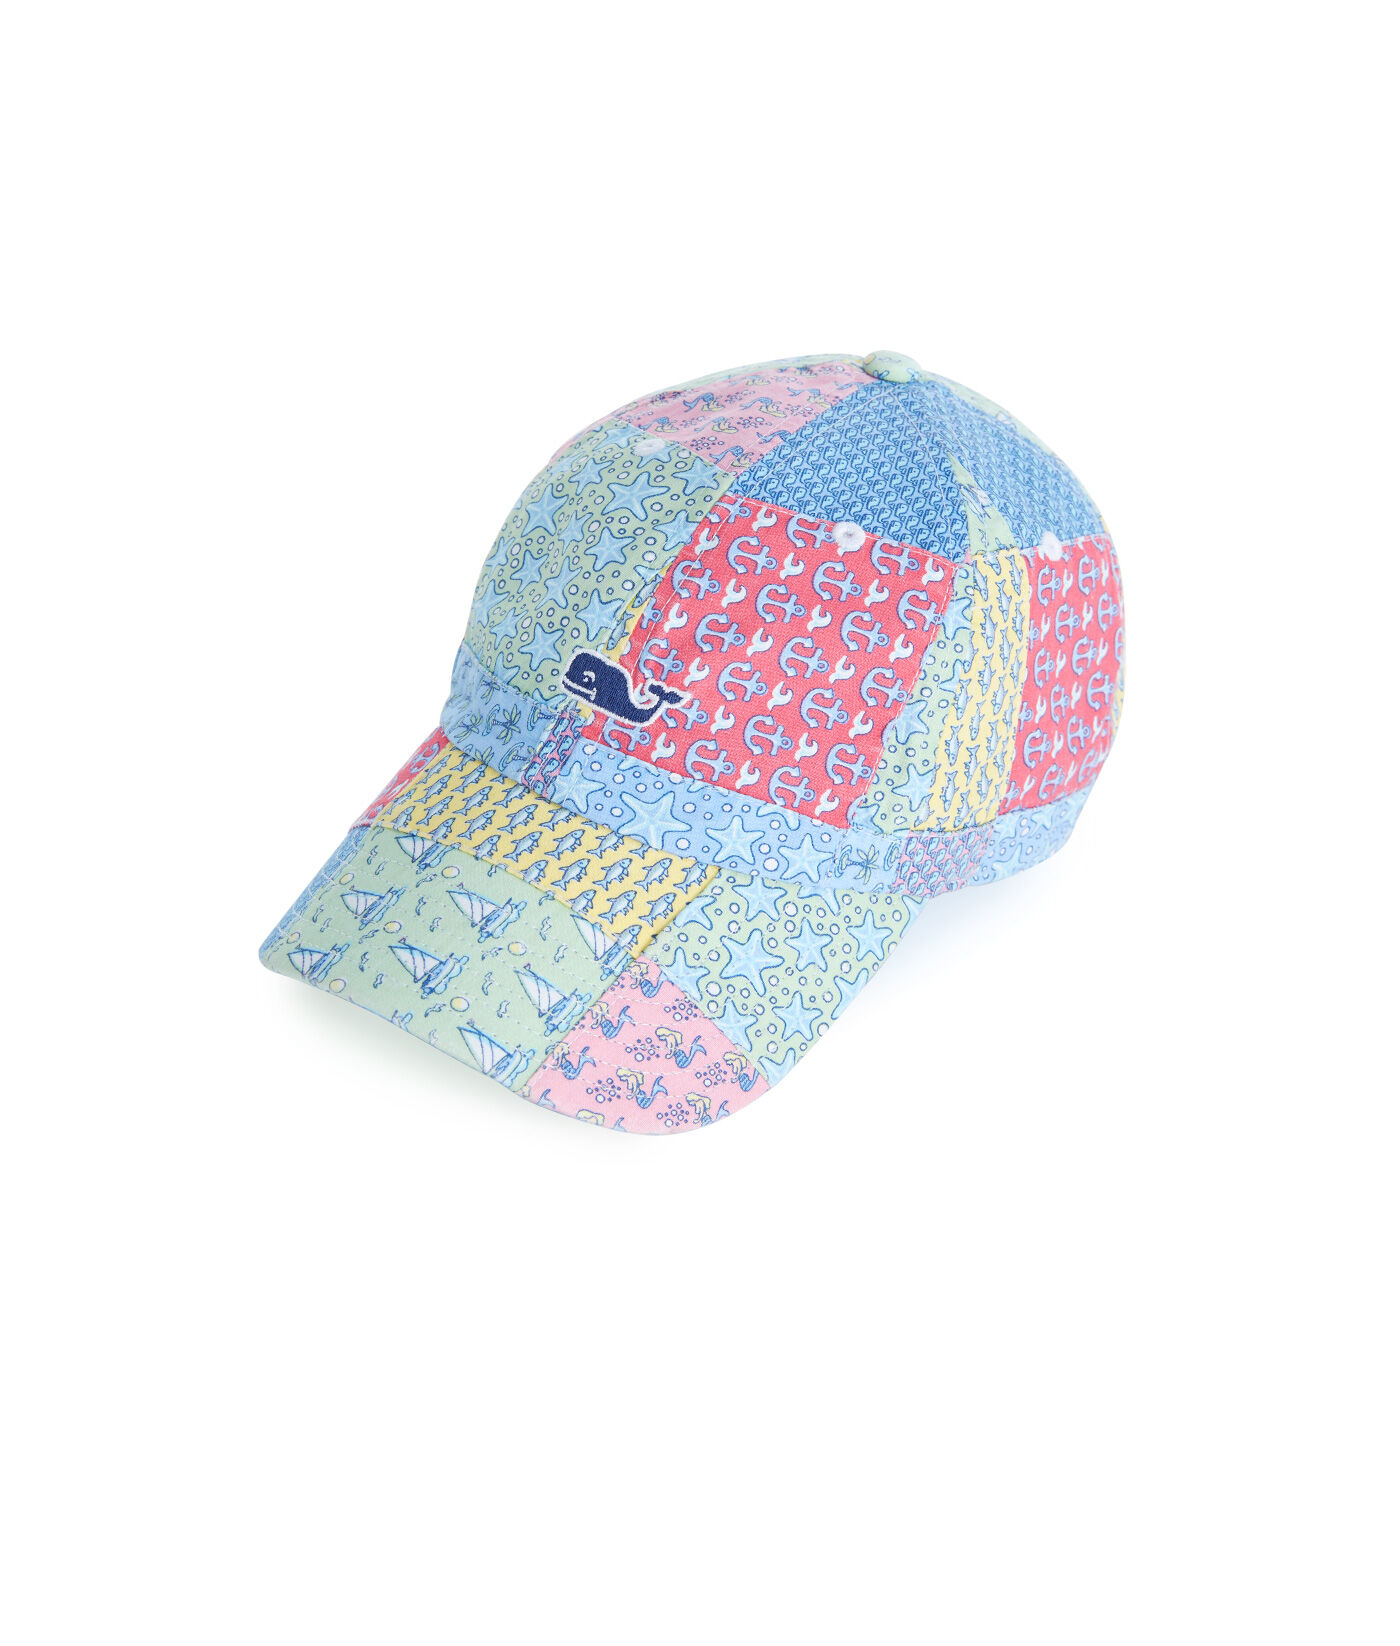 hot sale online 9854d 0d107 ... italy texas rangers baseball camo hat lemonade 6a87e abae7 ...